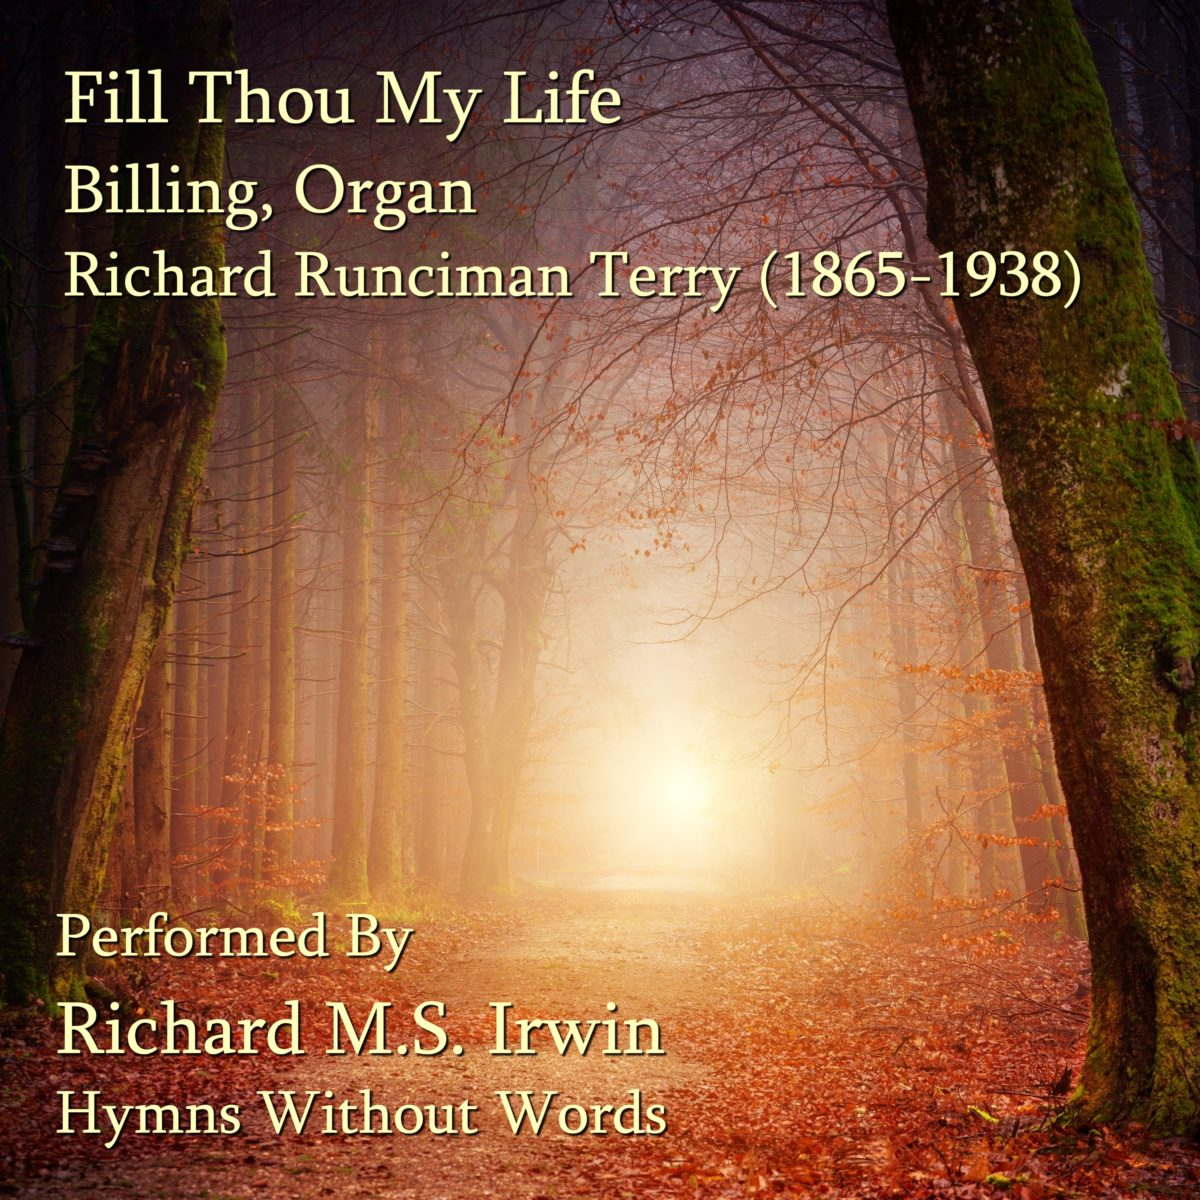 Fill Thou My Life O Lord My God (Billing, Organ, 7 verses)